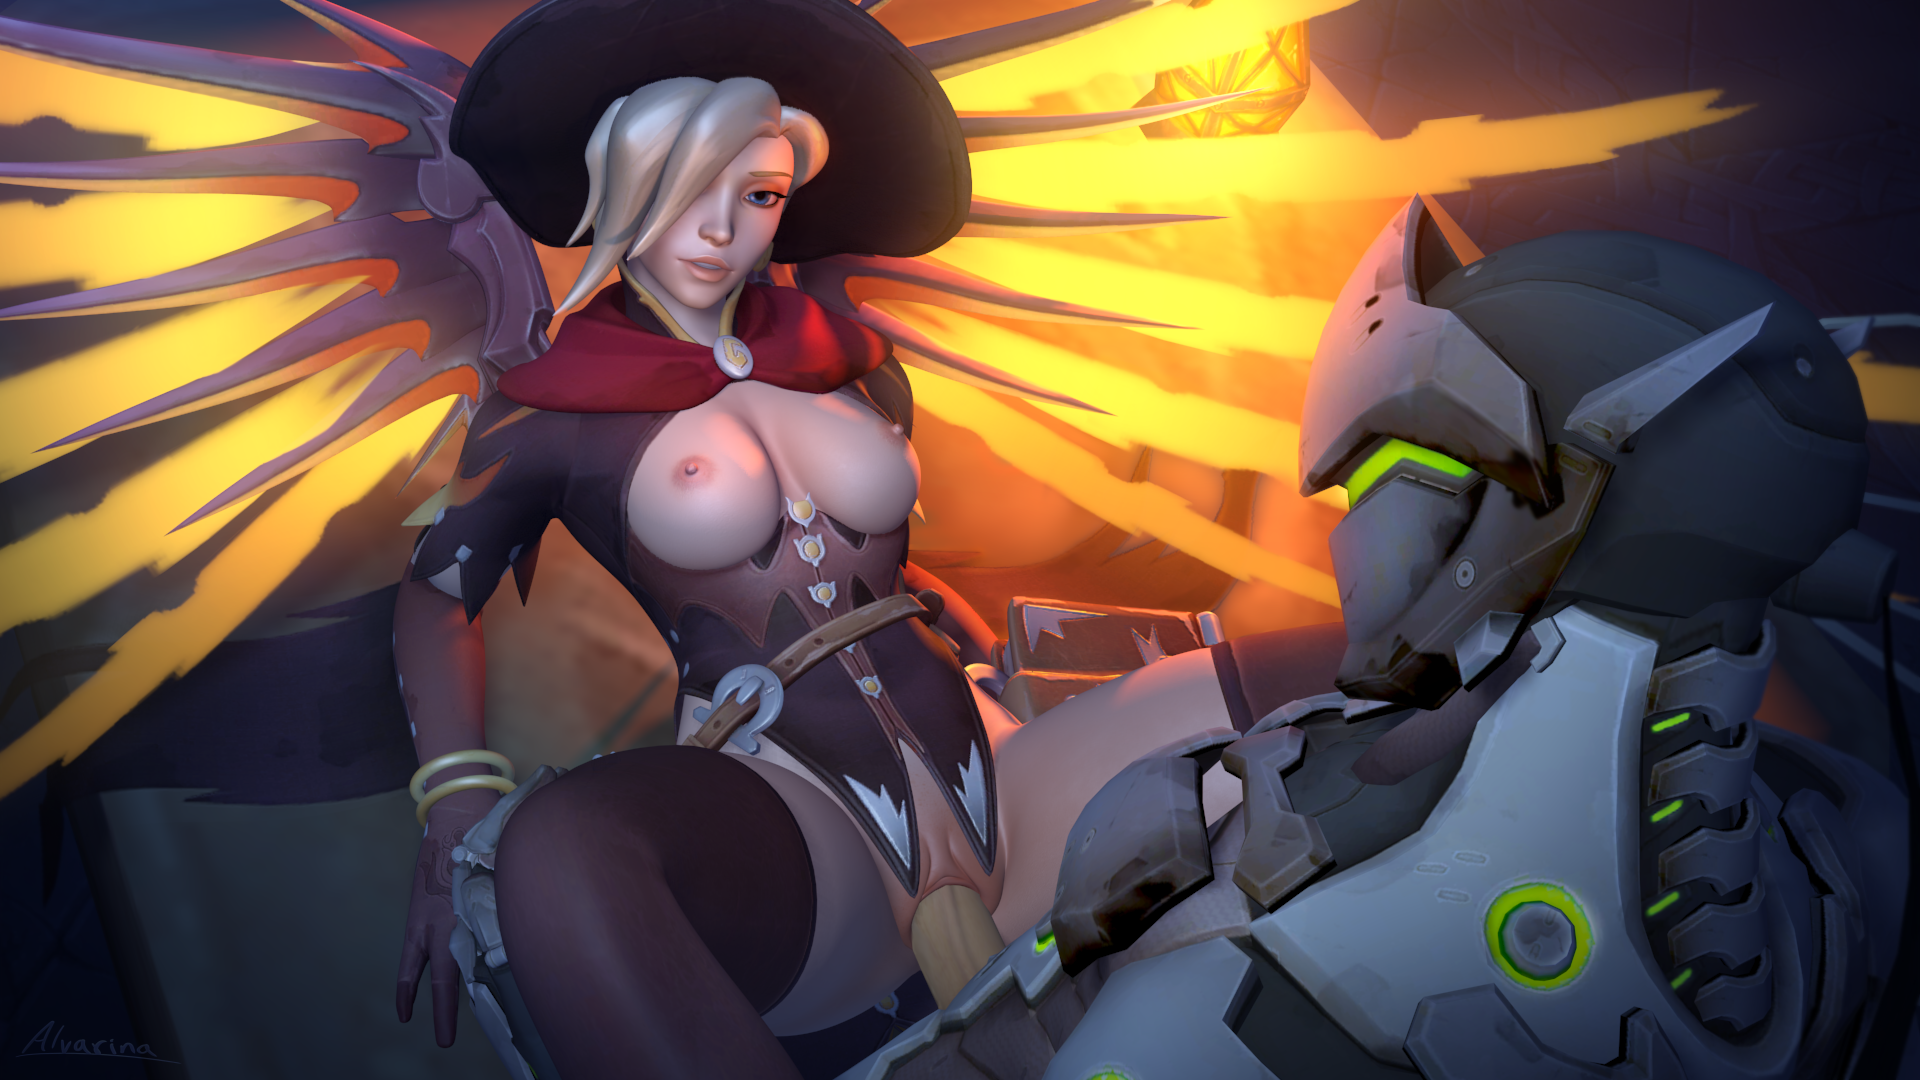 2366094 - Alvarina Genji_Shimada Halloween Mercy Overlook